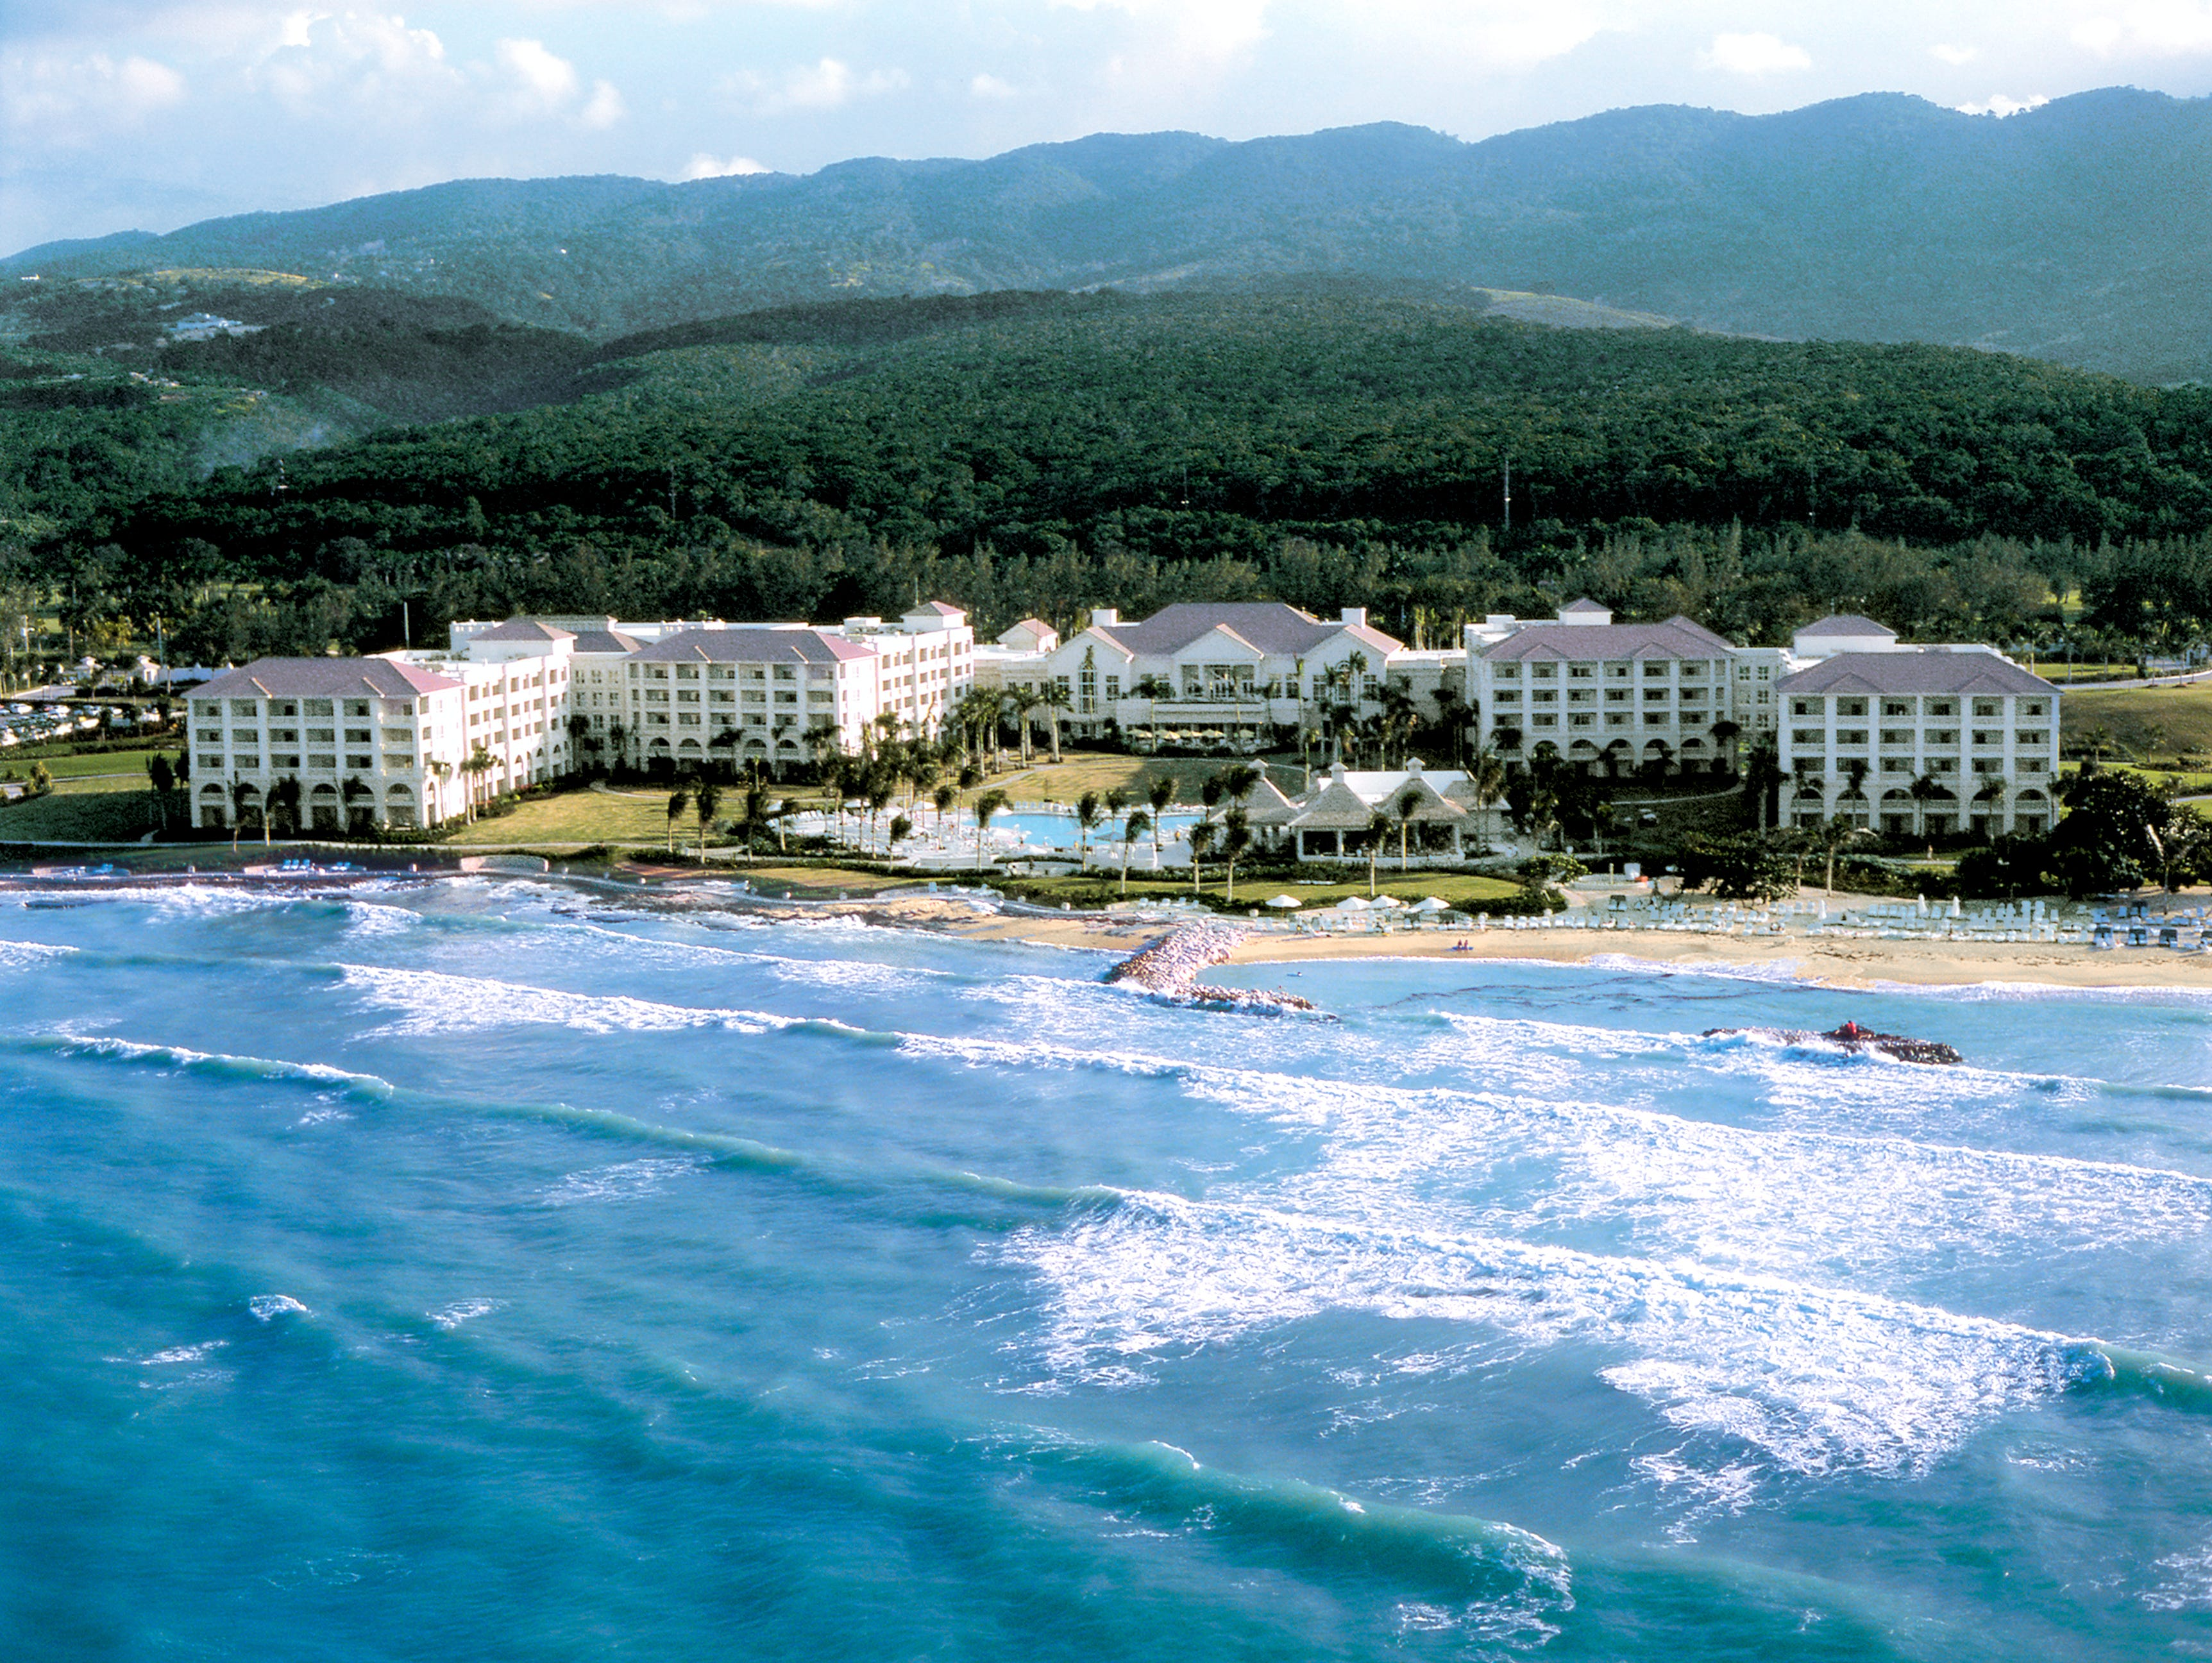 Montego Bay, Jamaica, is an affordable destination for January, according to Travelzoo. This is The Ritz-Carlton Golf & Spa Resort, Rose Hall.